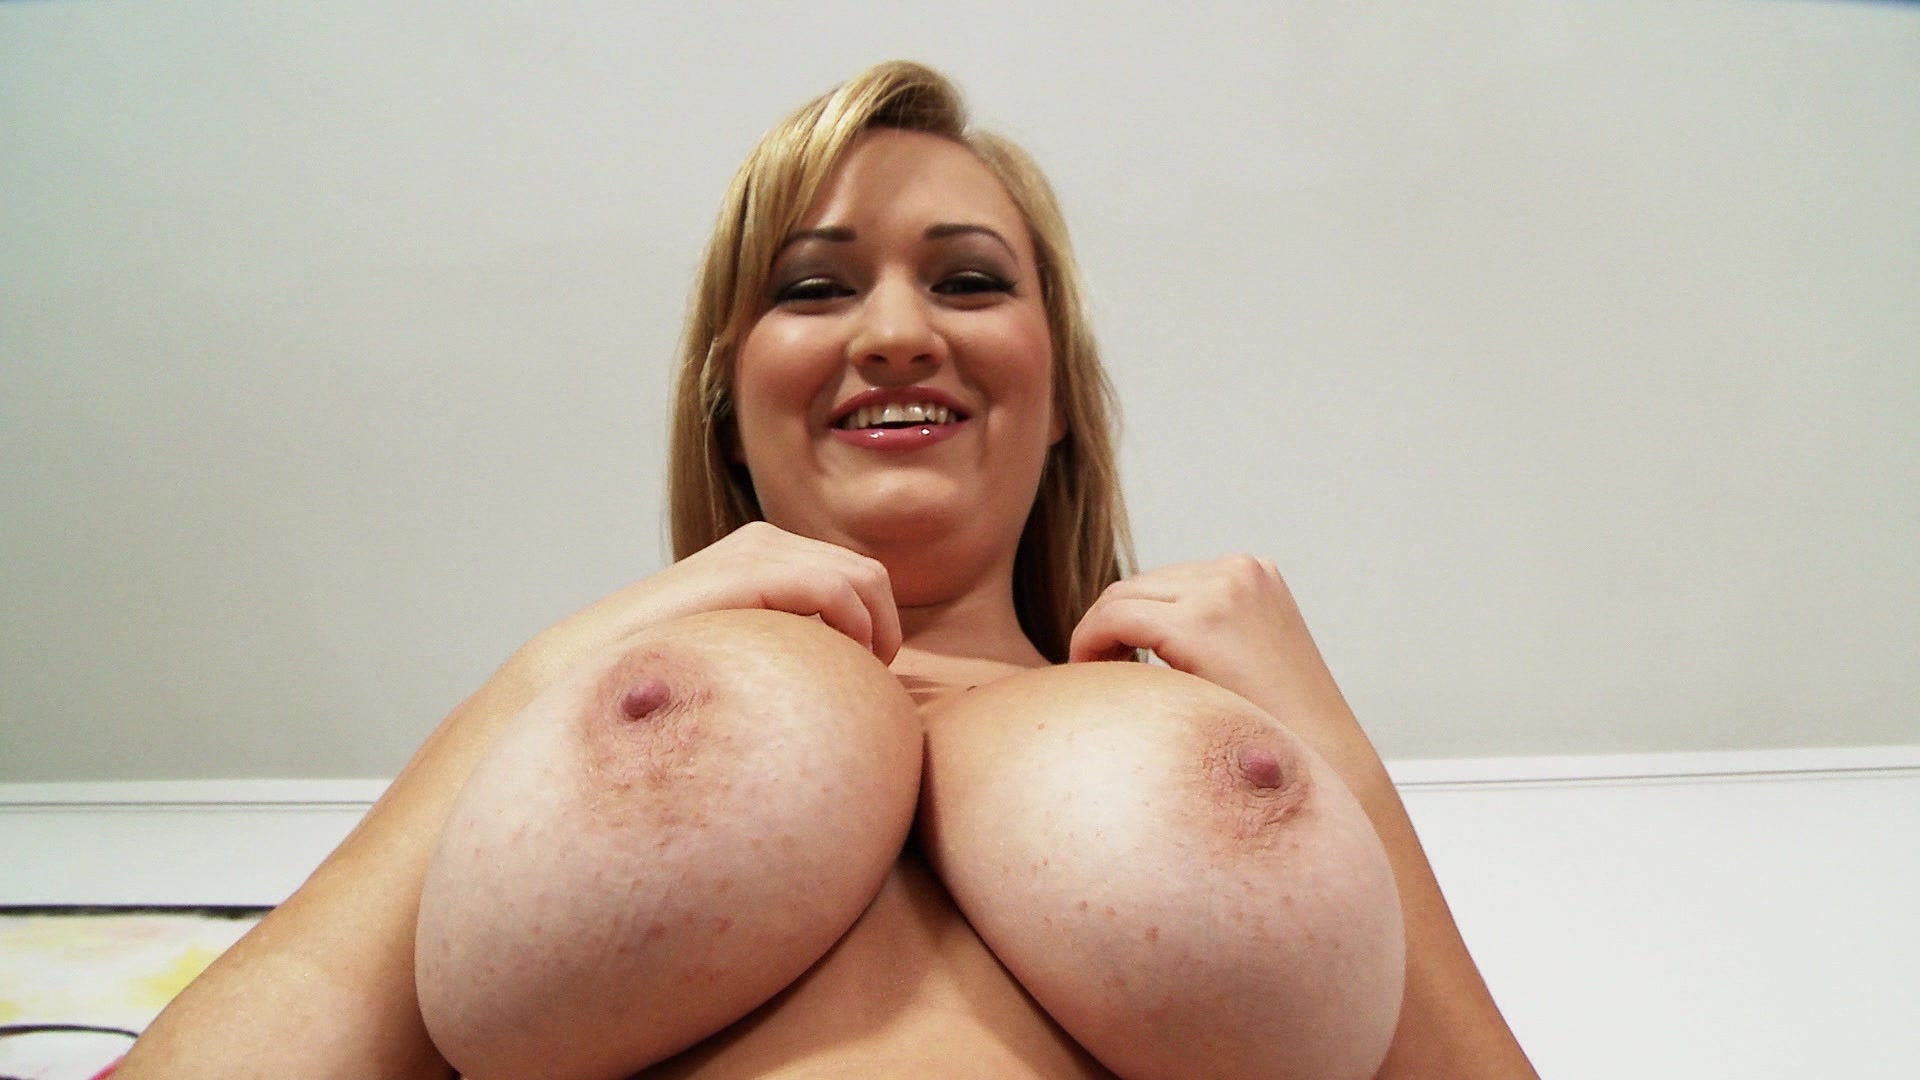 Redneck girls big tits jiggling nude videos gone